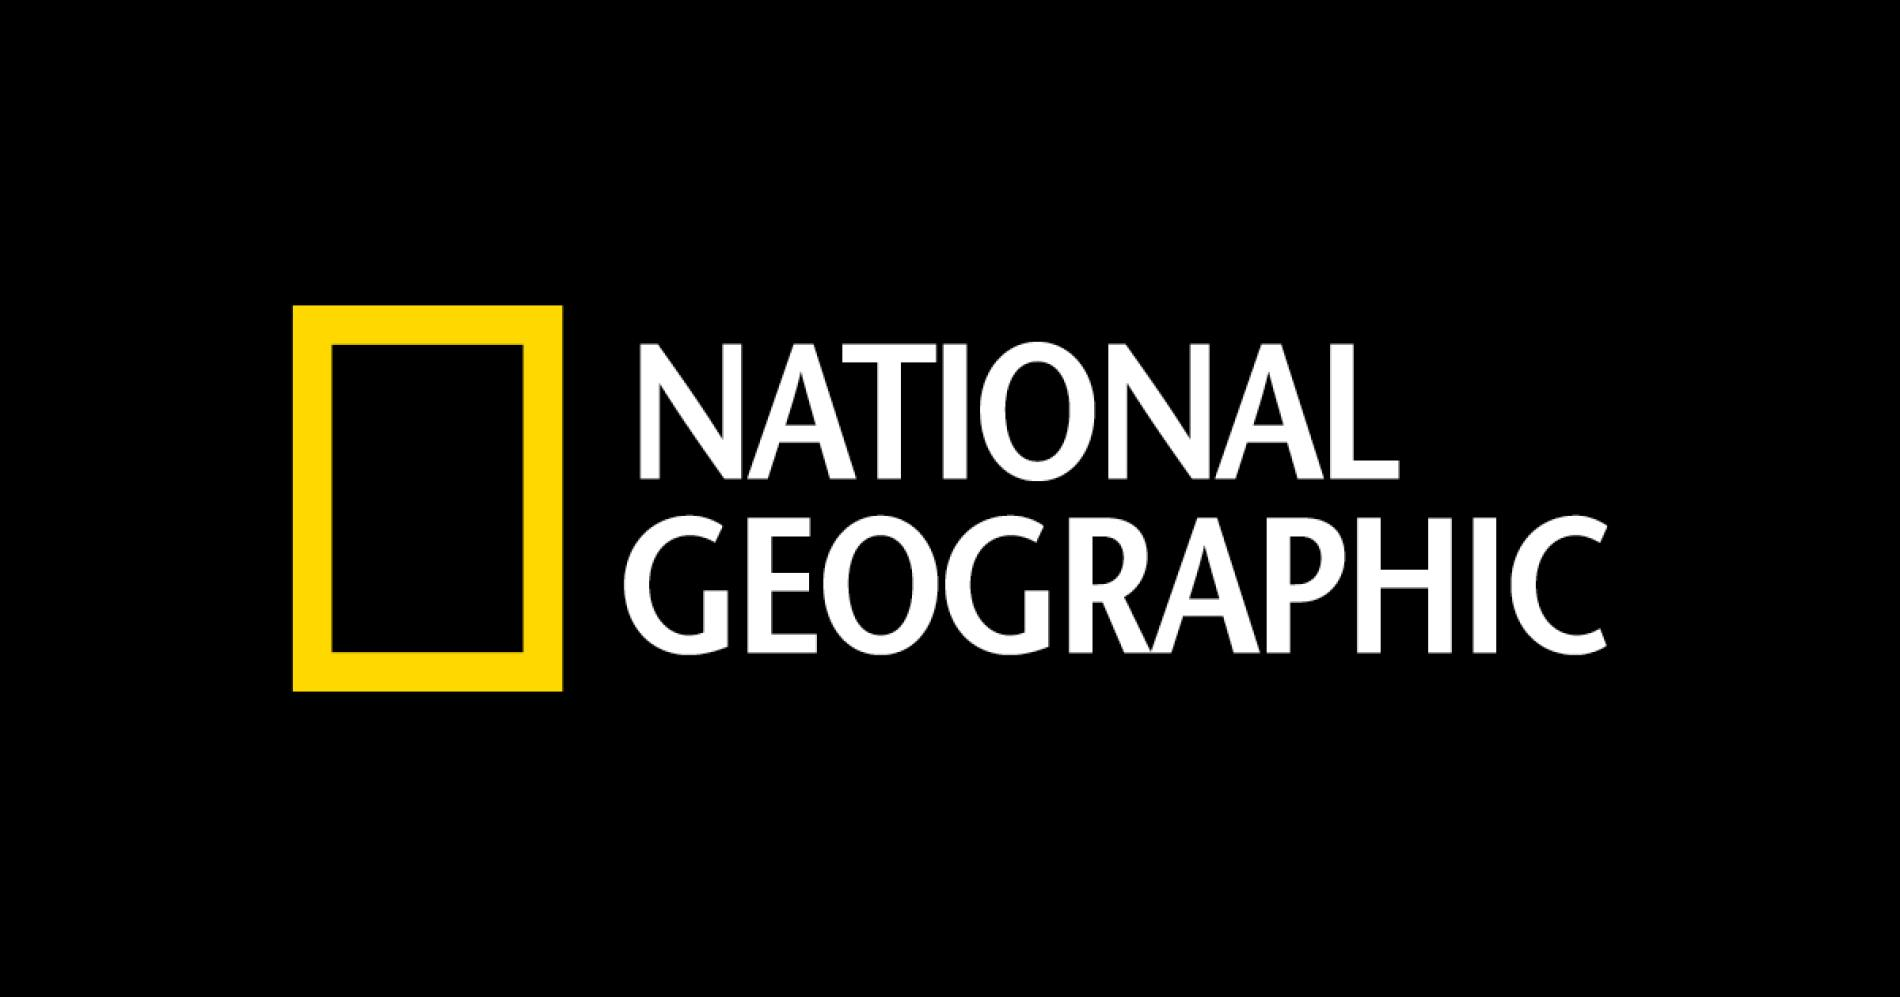 national-geographic-ngsversion-1475151192637-adapt-1900-1